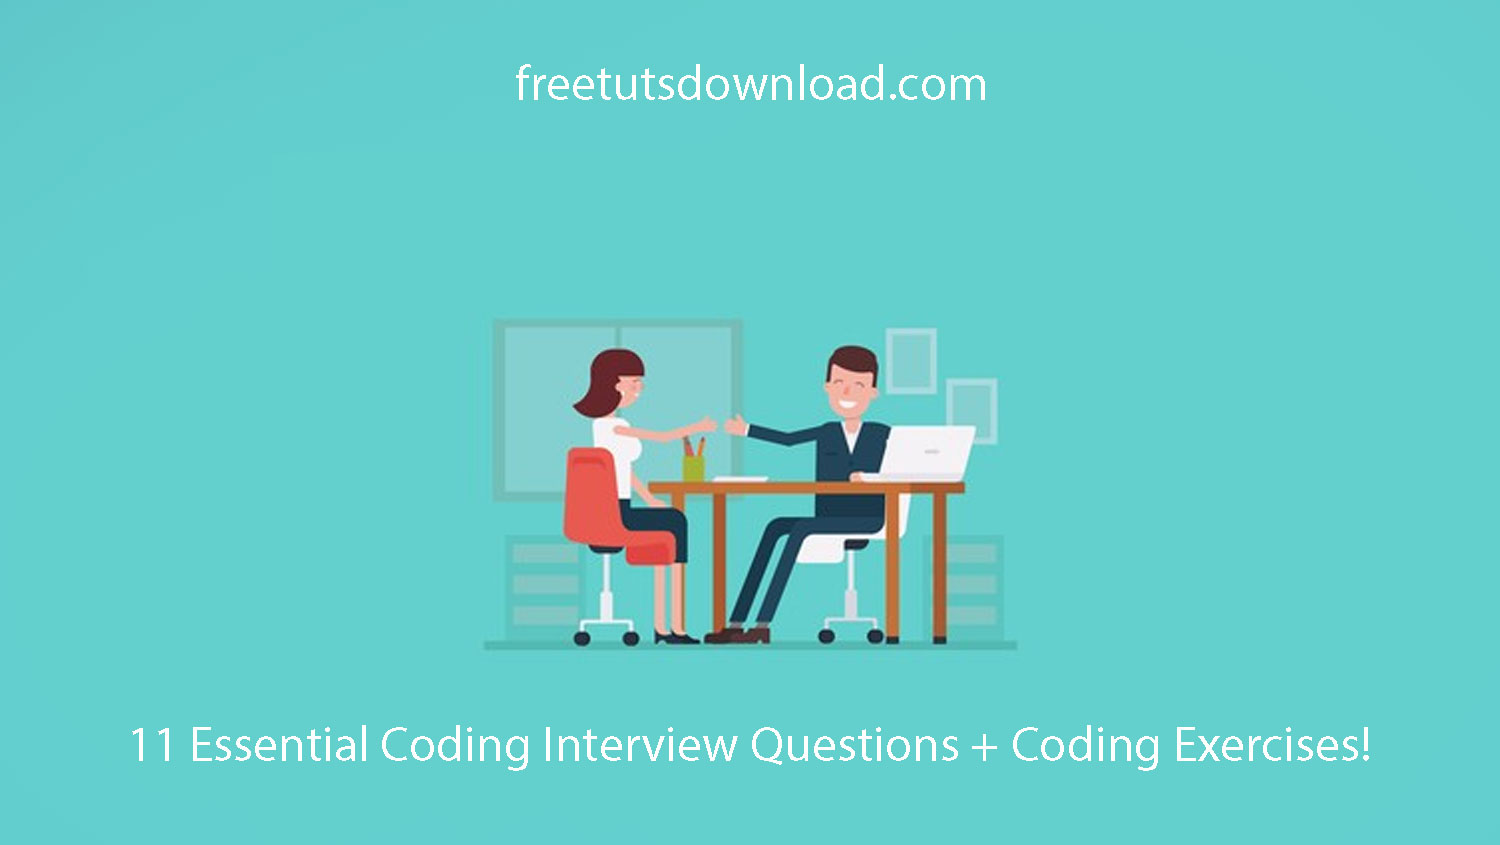 11 Essential Coding Interview Questions + Coding Exercises!